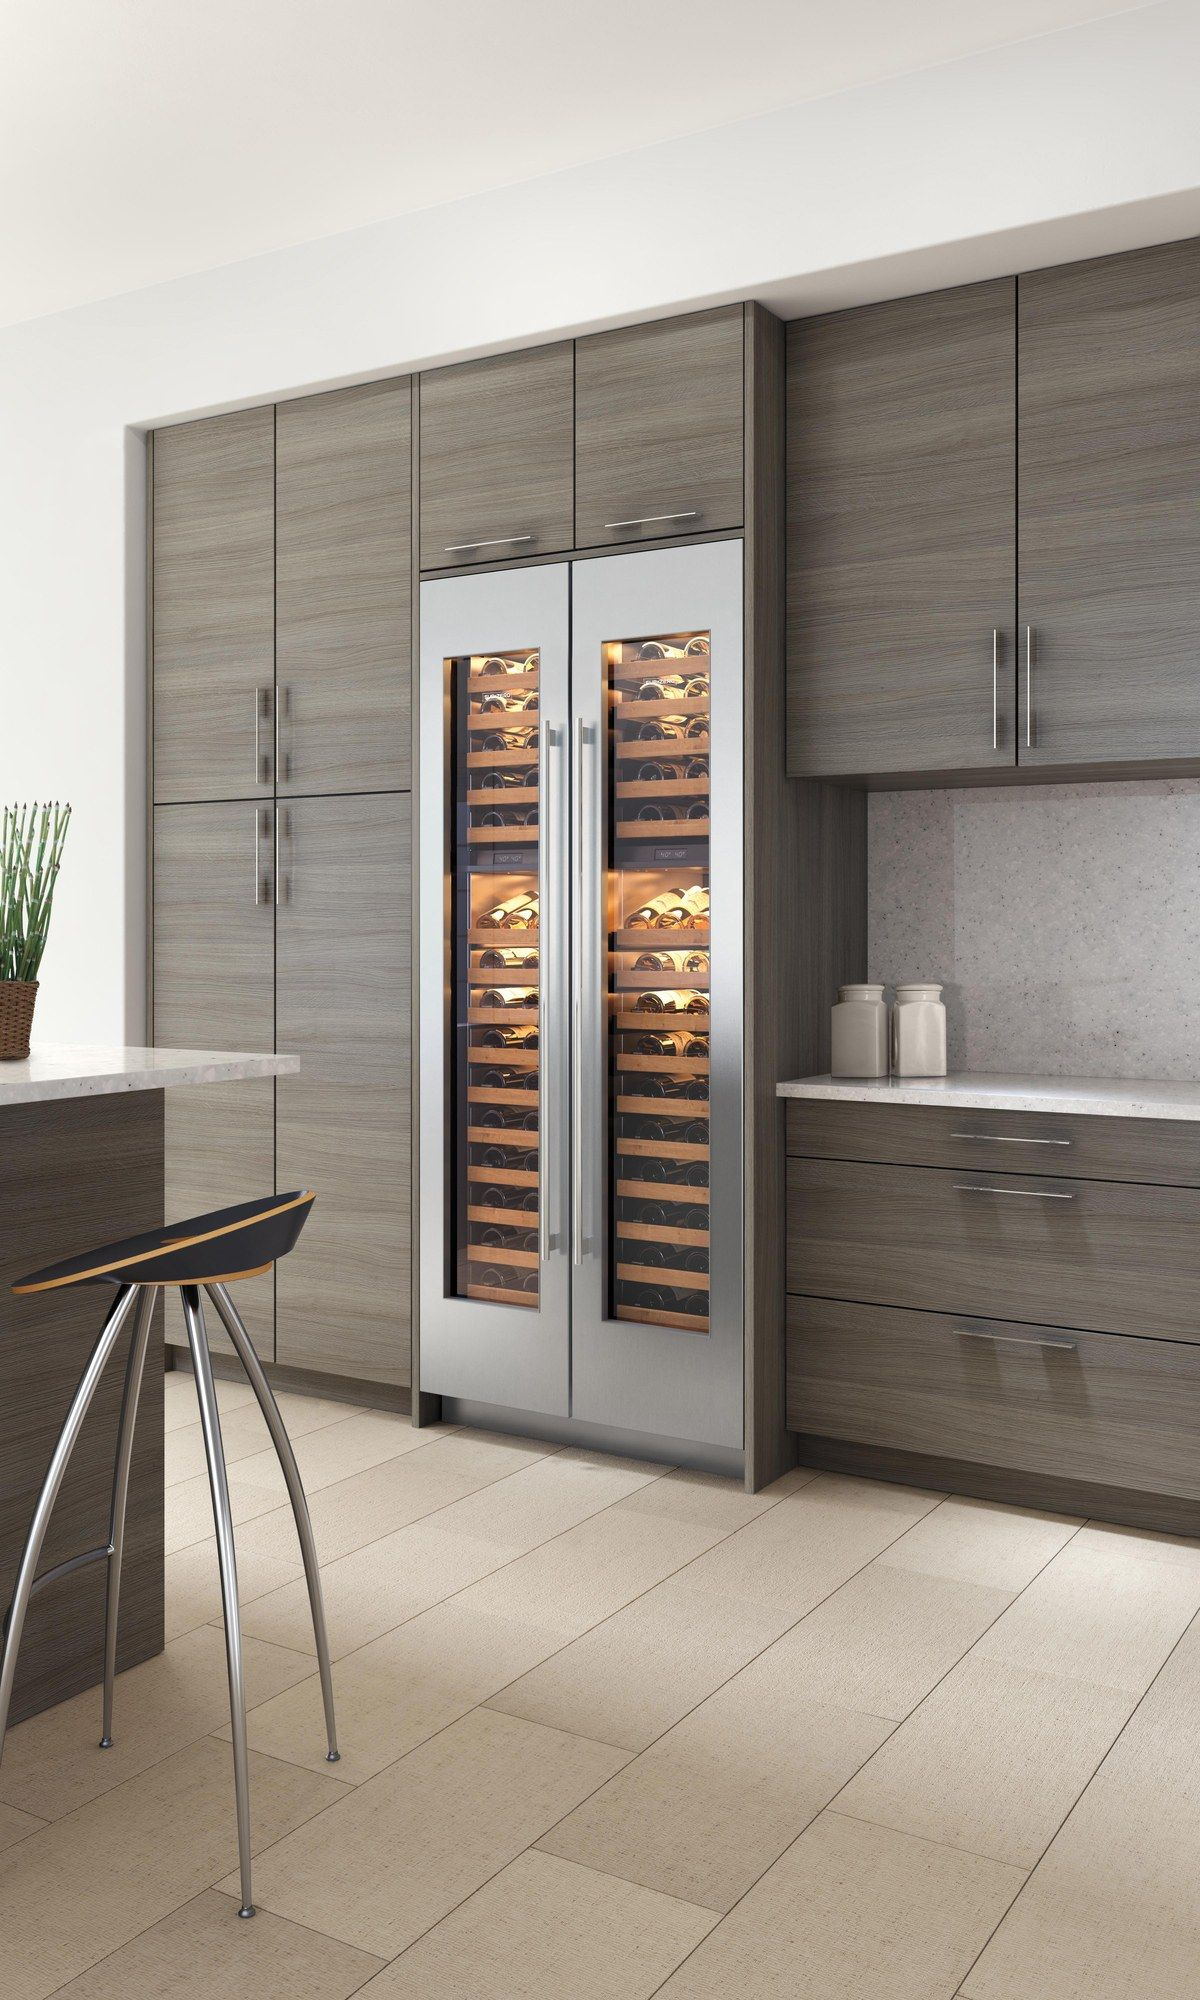 Preserve your wine with the IW 18 Wine Storage from Sub Zero which